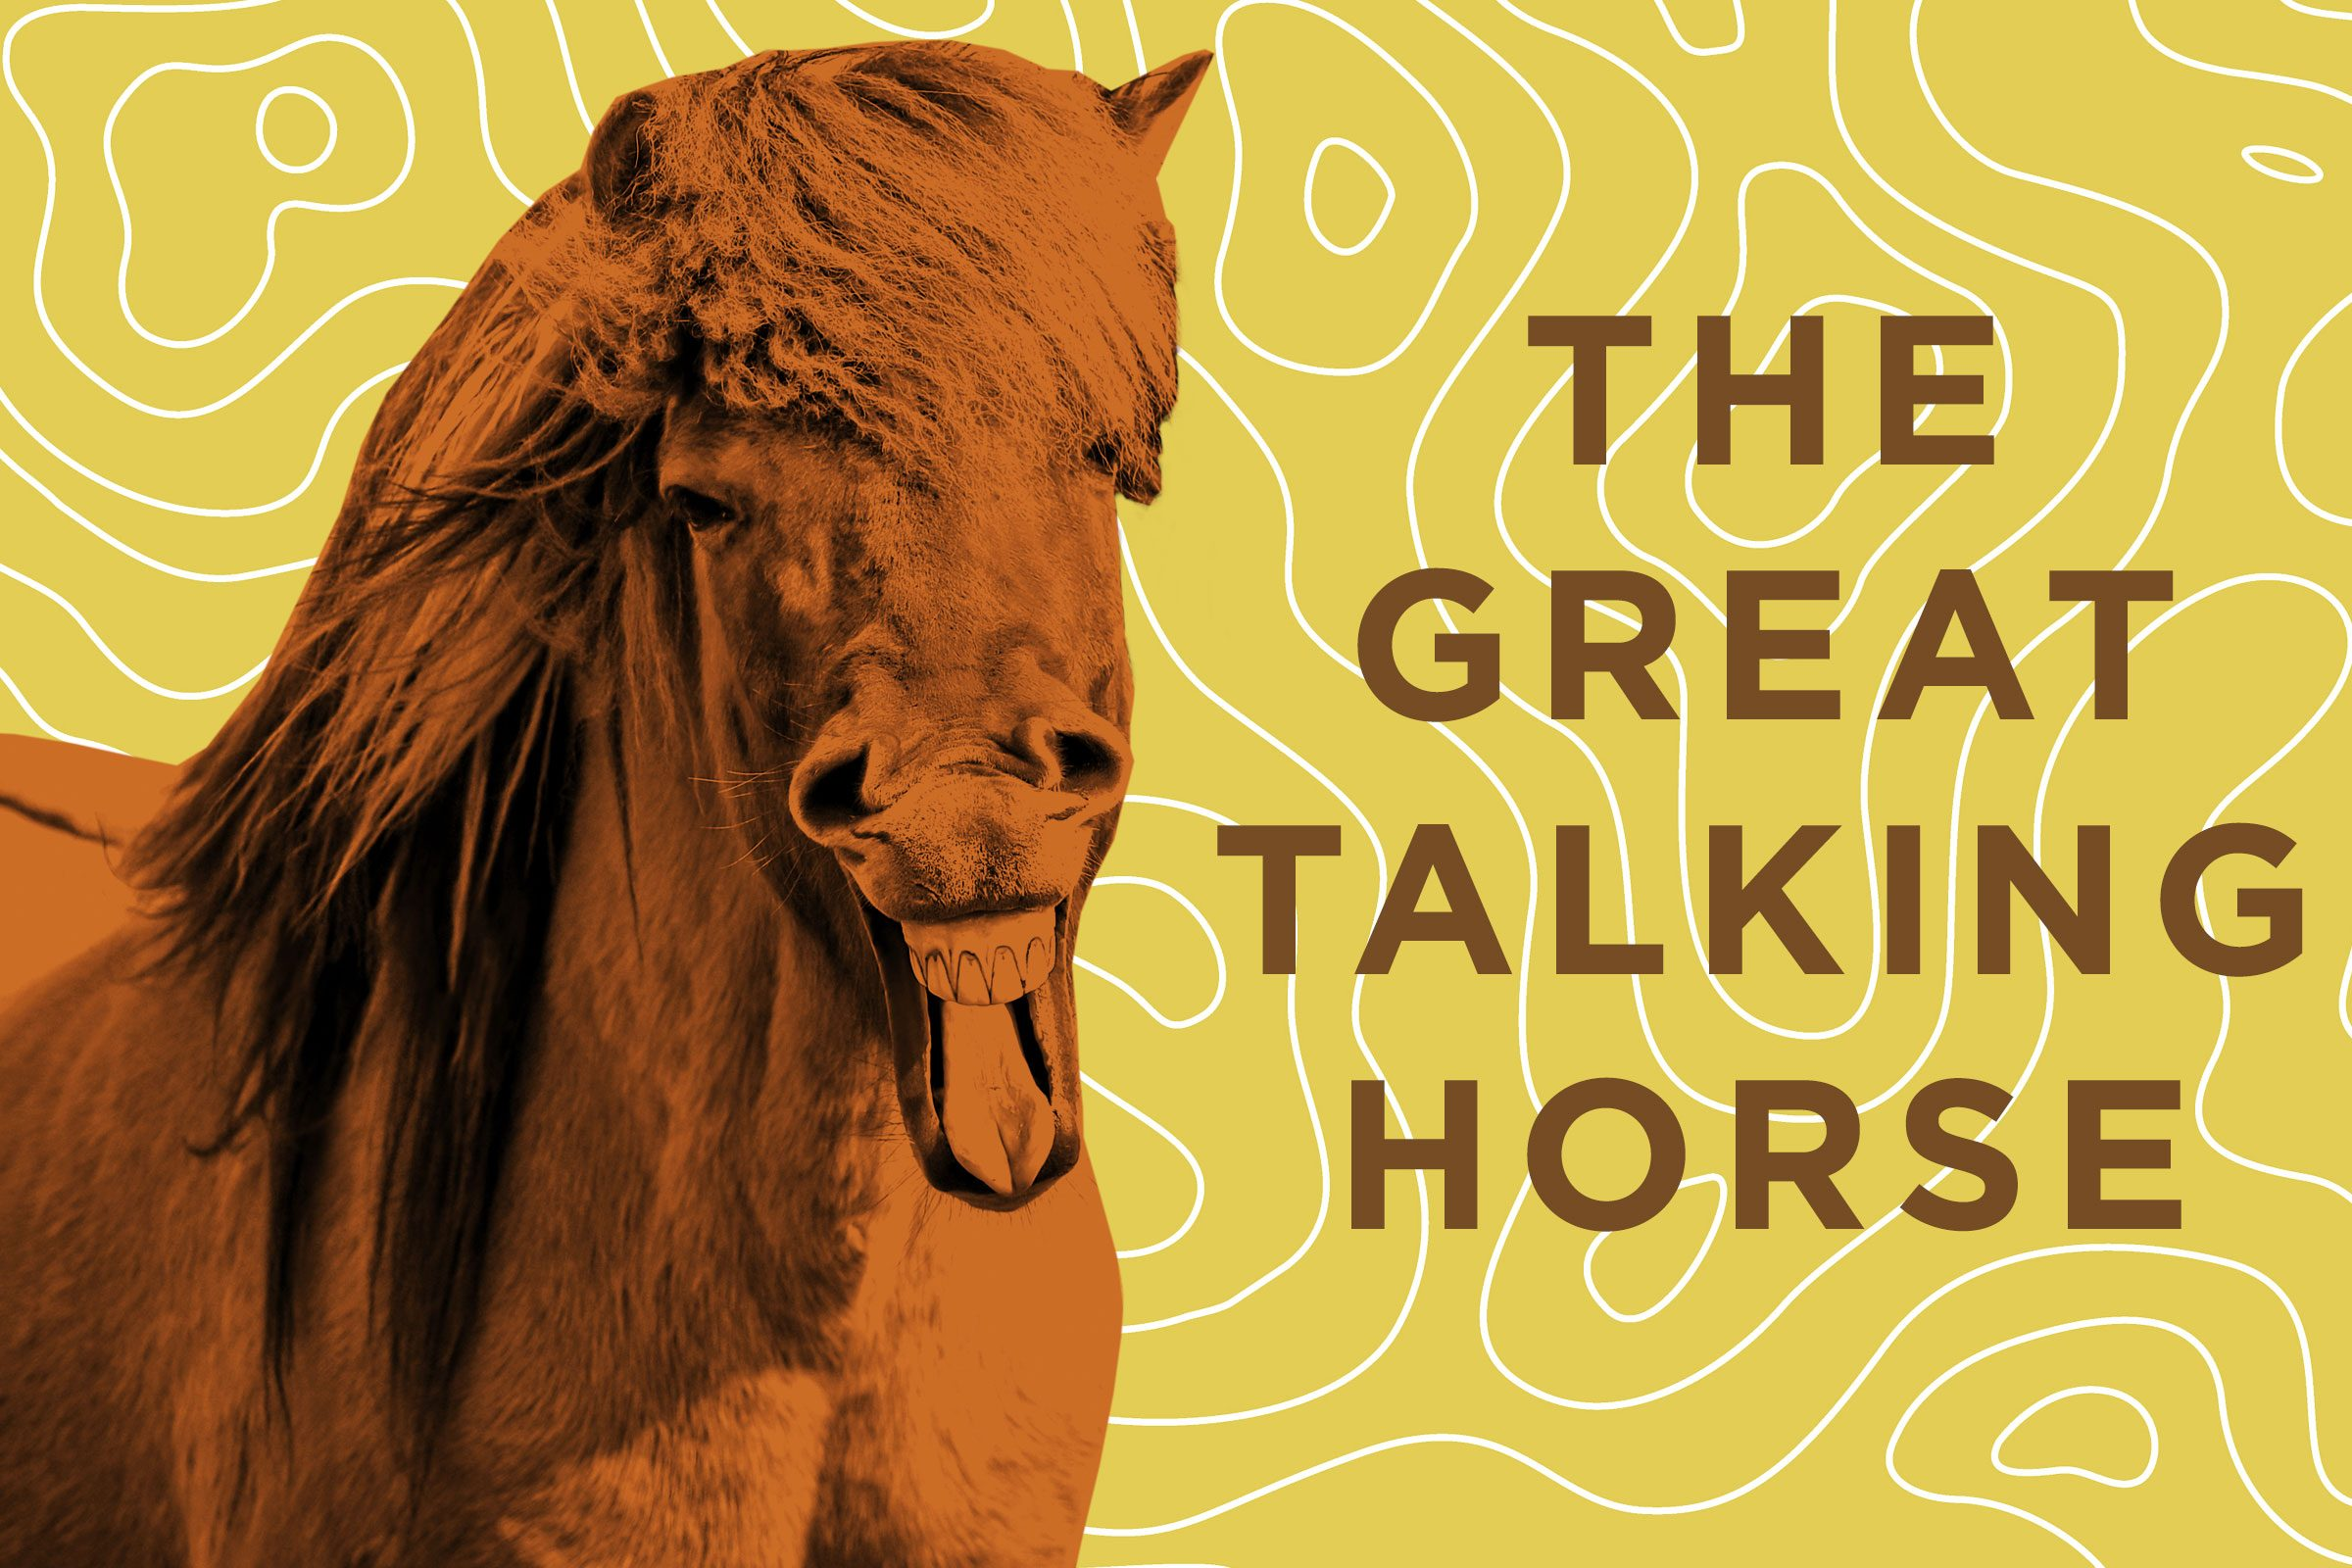 05-horse-jokes-talking-horse.jpg